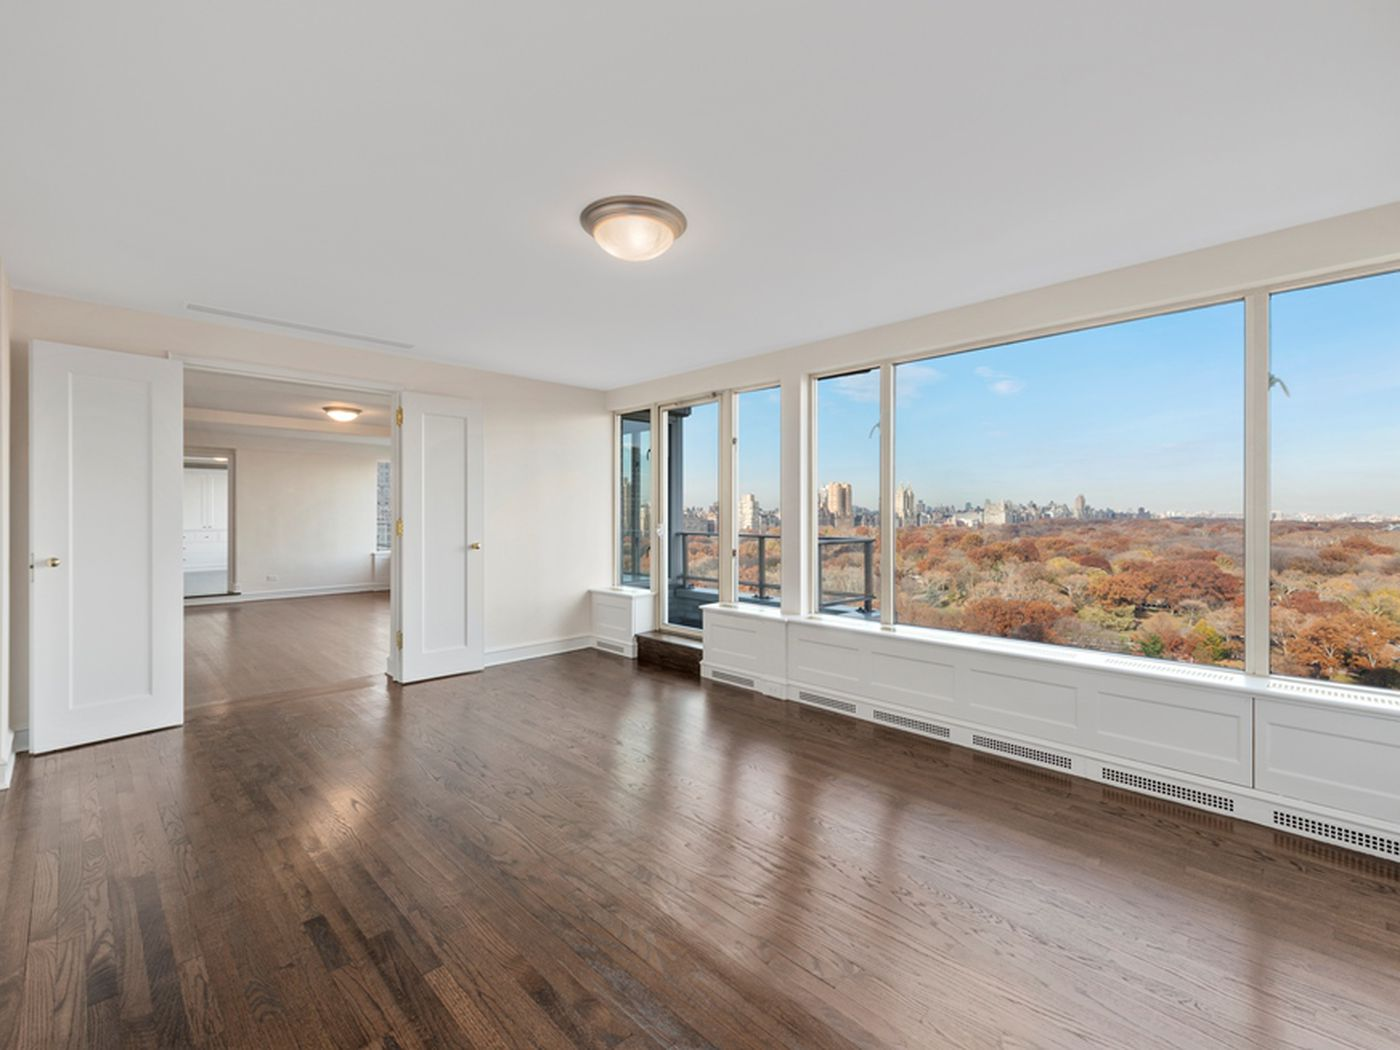 Lady Gaga S Former Central Park Penthouse Is Now A 33k Month Rental Updated Curbed Ny